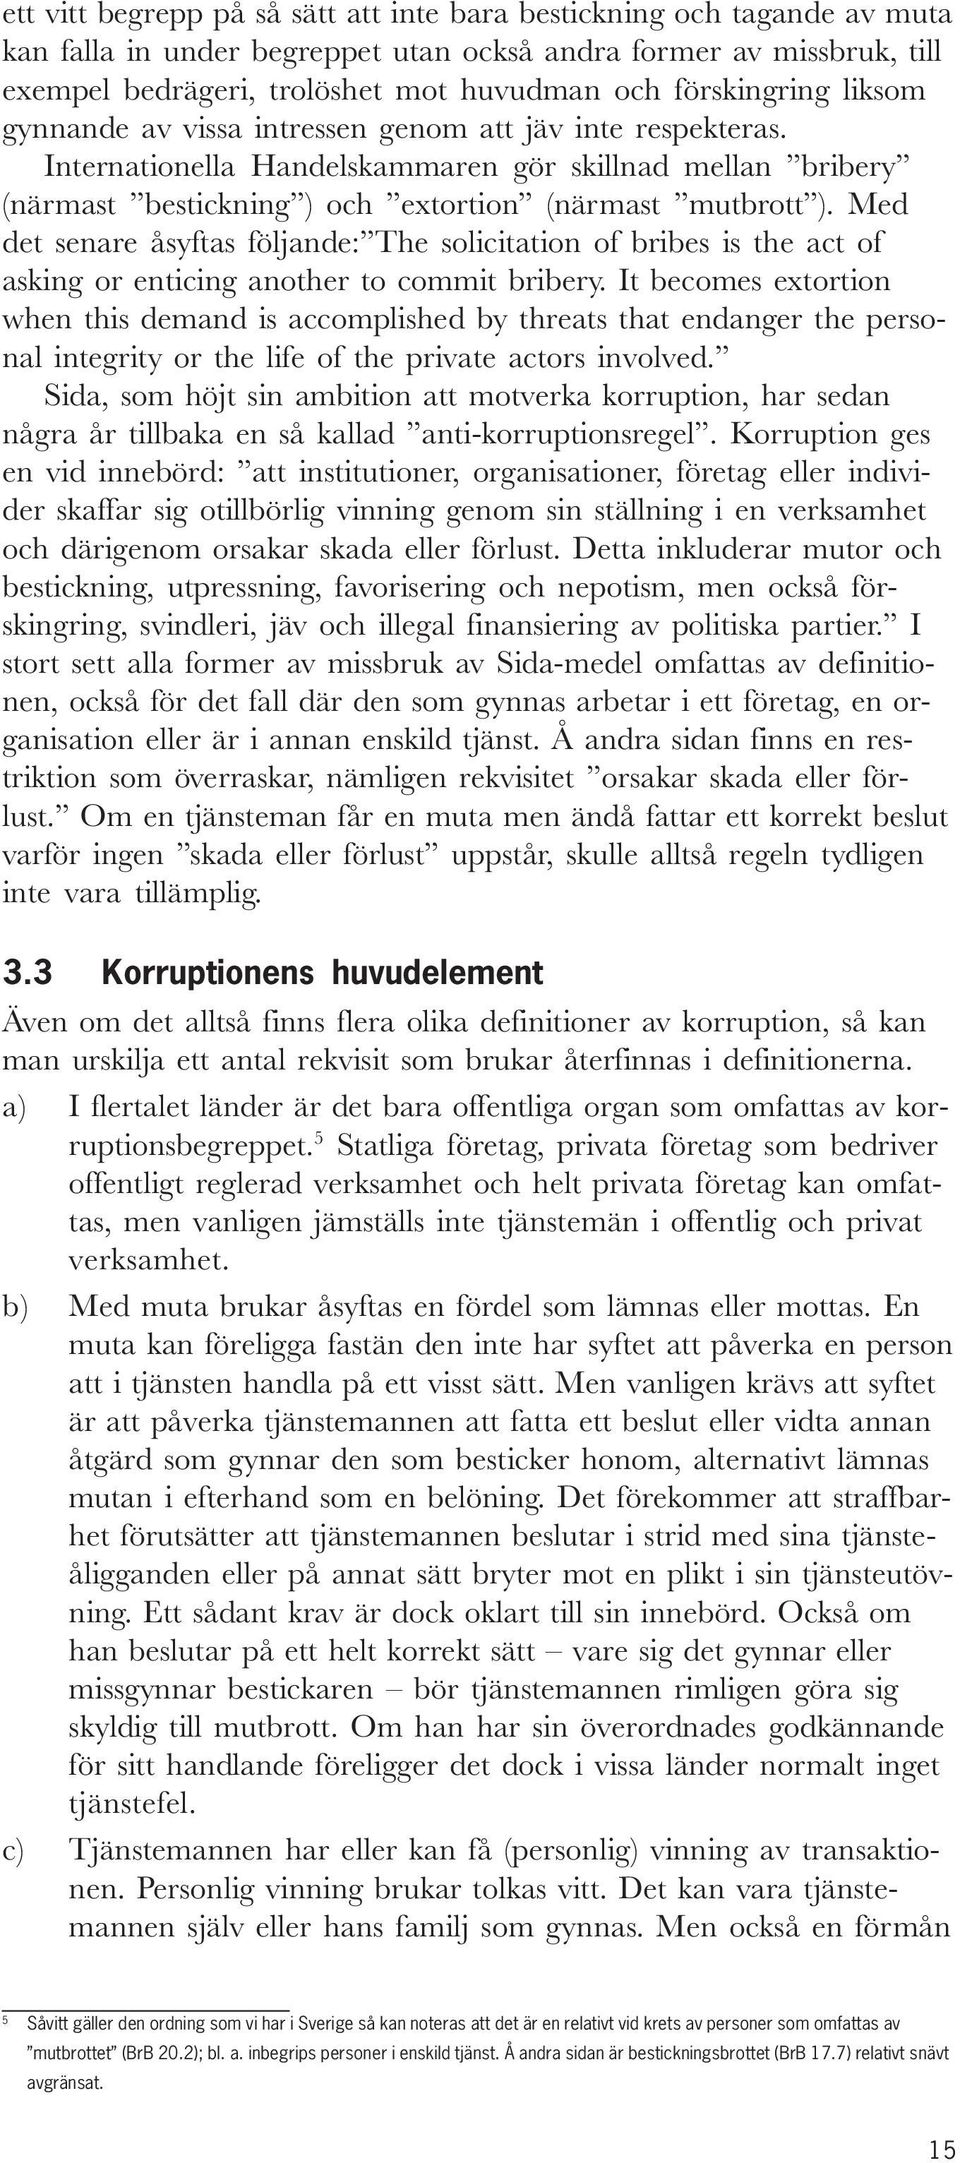 Med det senare åsyftas följande: The solicitation of bribes is the act of asking or enticing another to commit bribery.